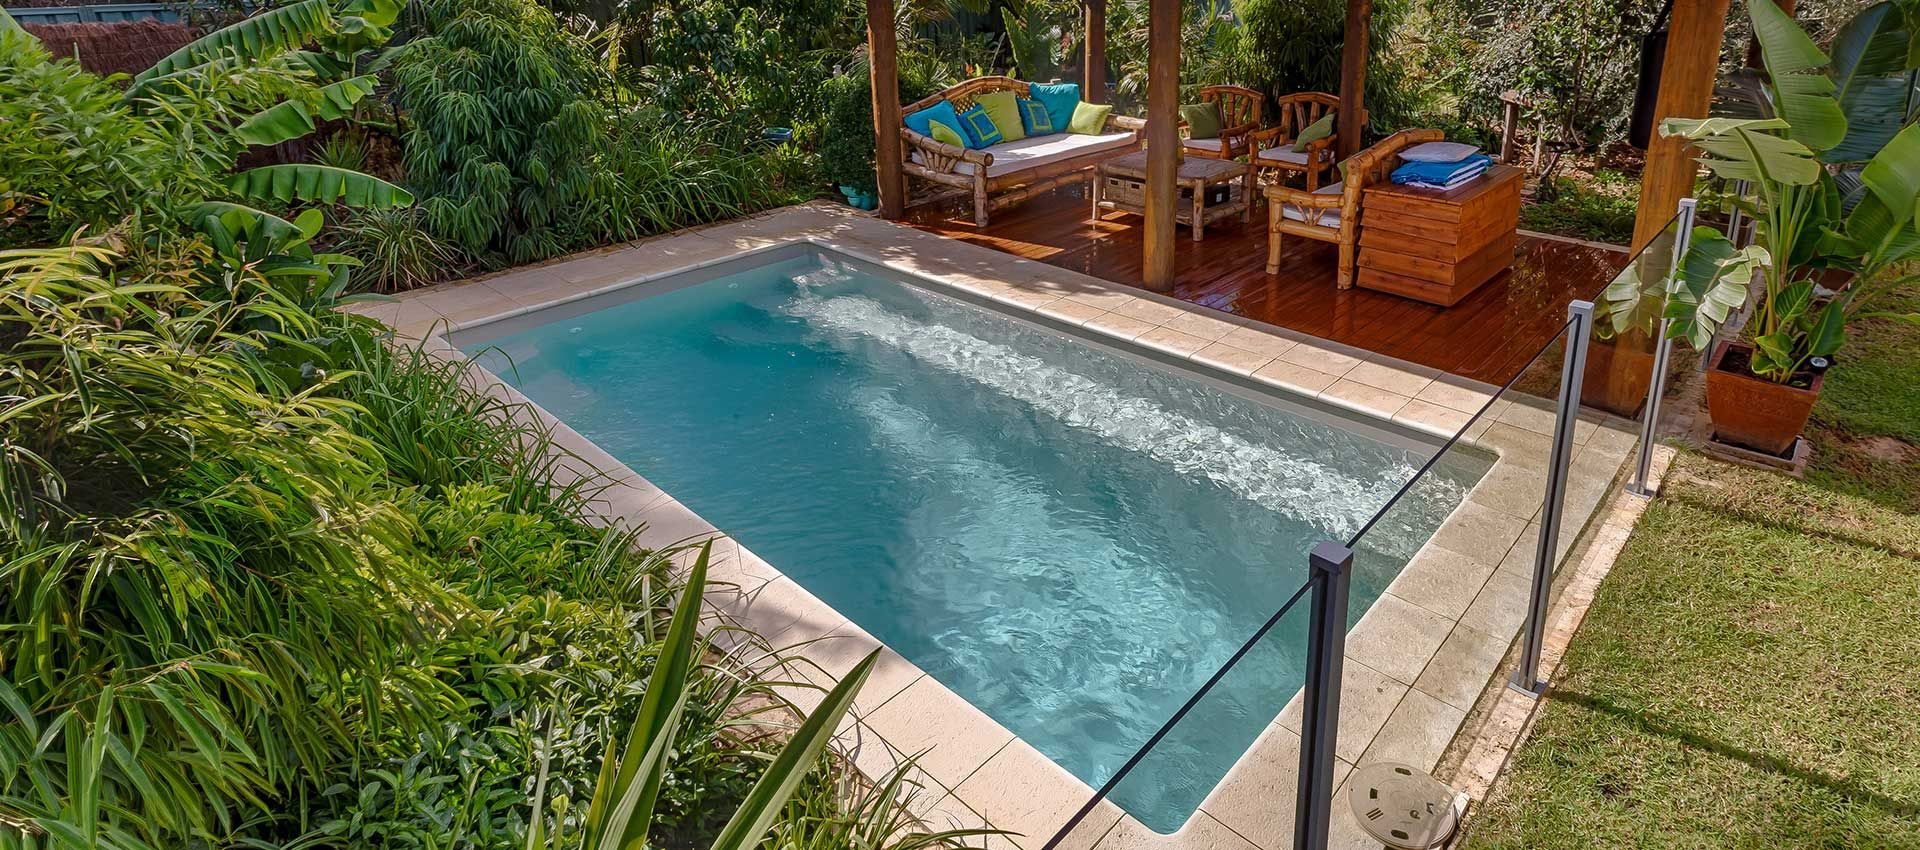 Swiming Pools Get A Peace Of Mind When You Are Choosing A Fiberglass Pool These Pools Require